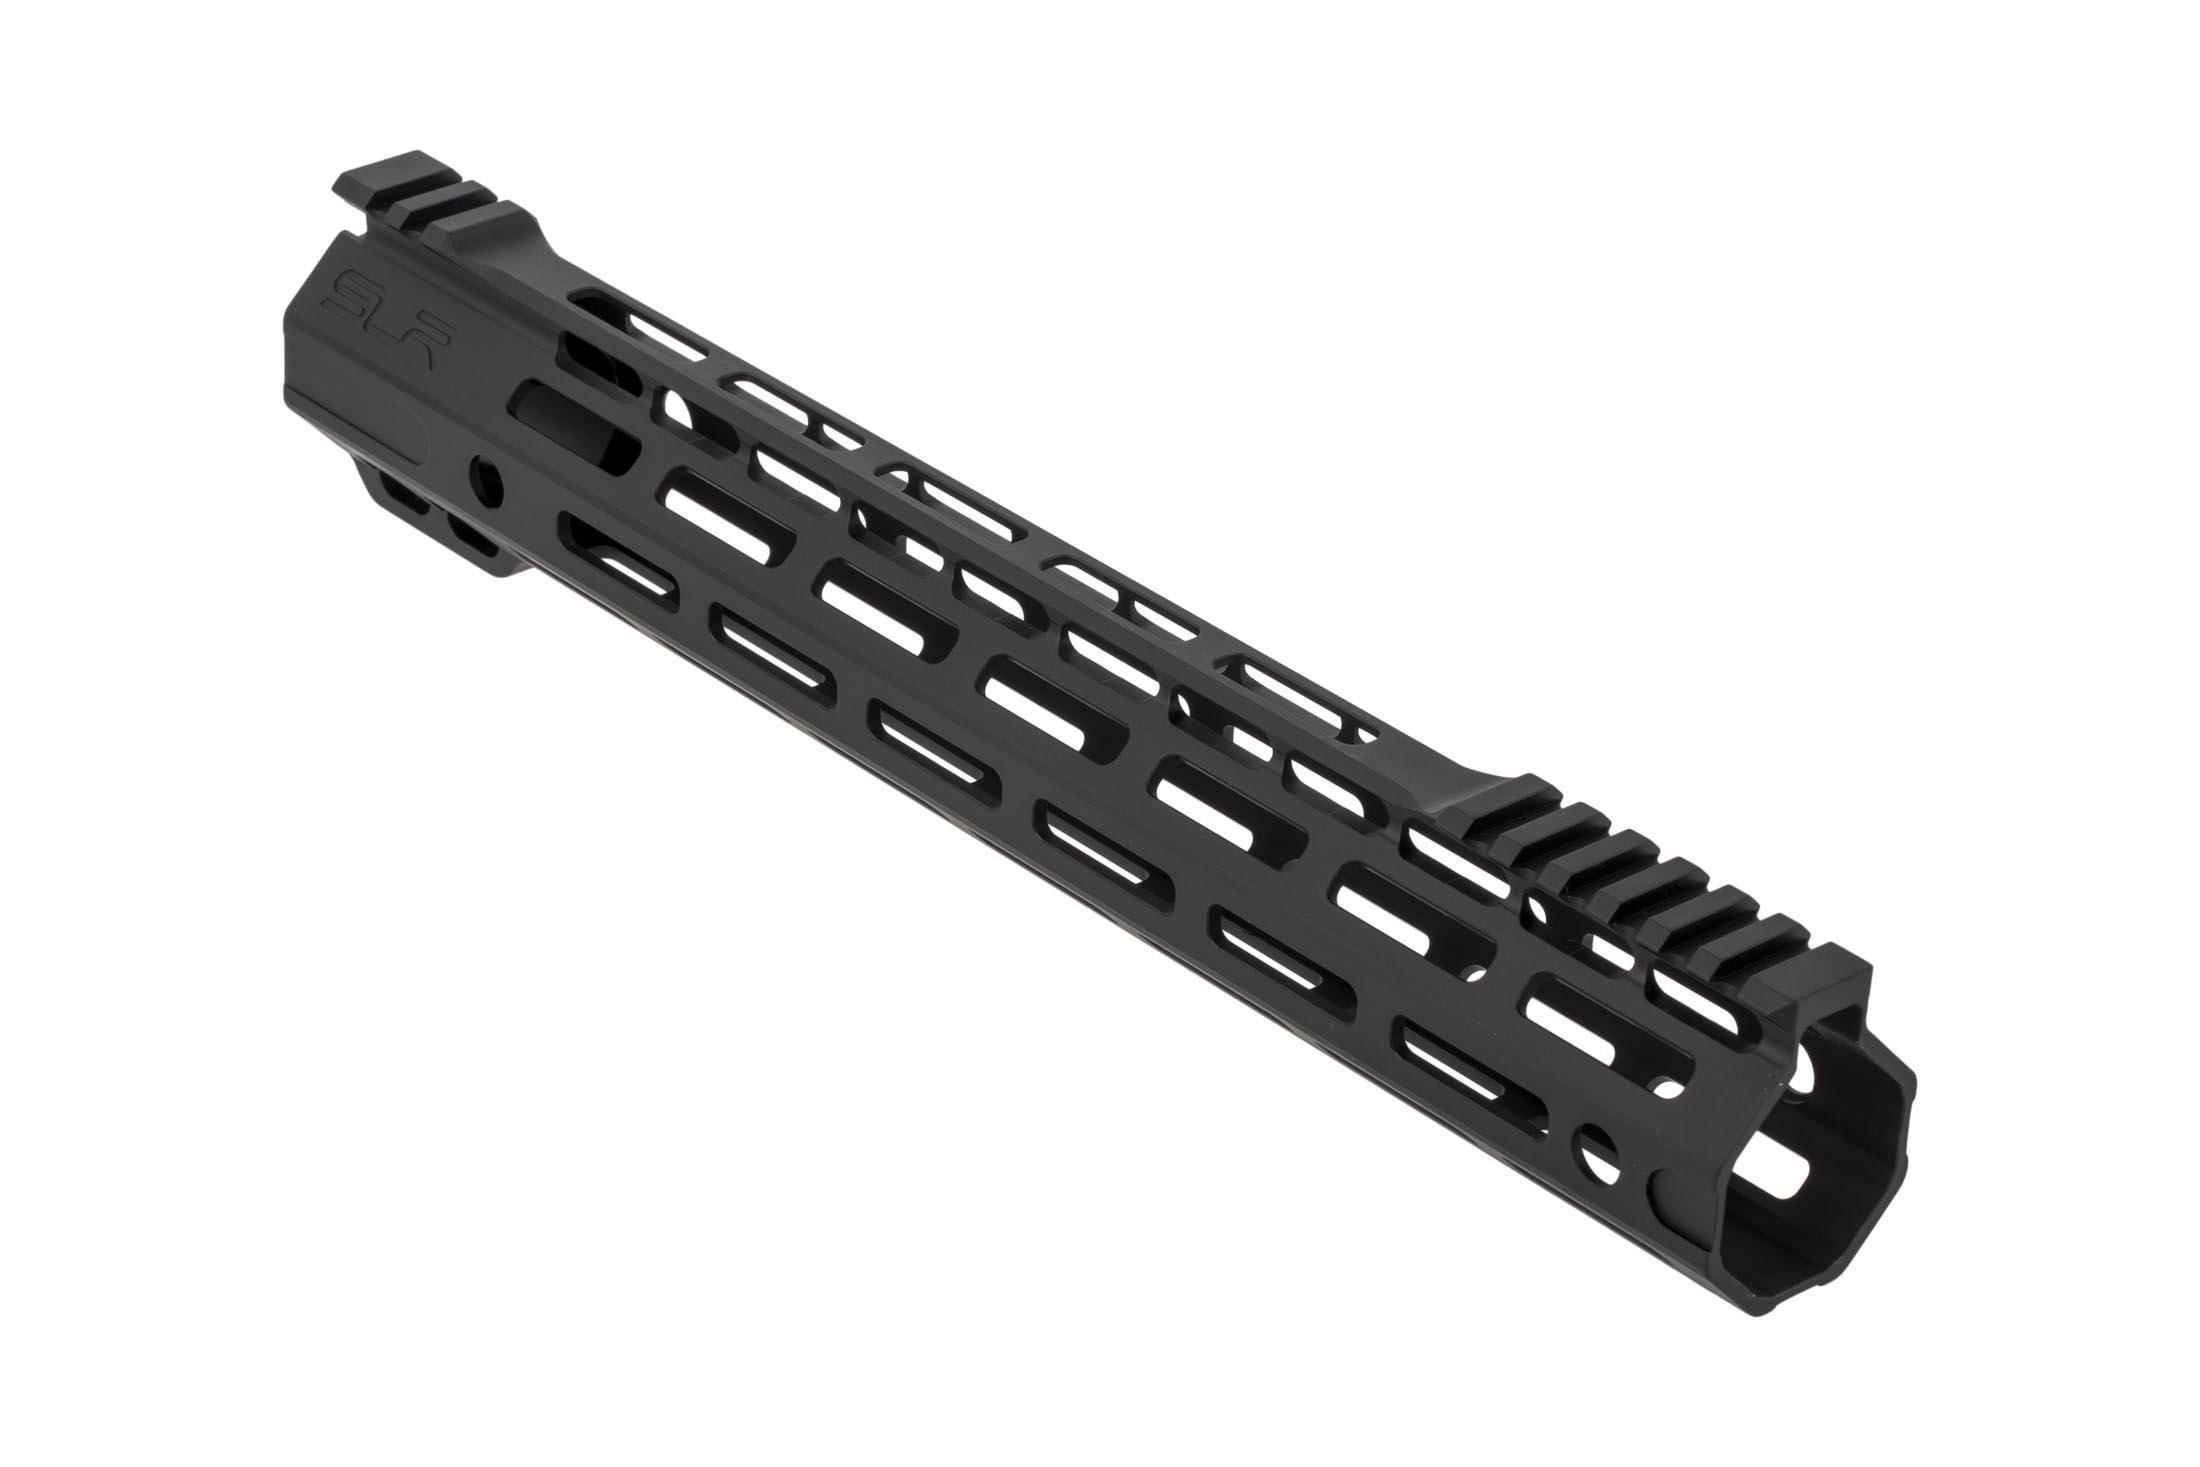 The SLR Rifleworks Ion Ultra Lite handguard is designed for low profile receivers